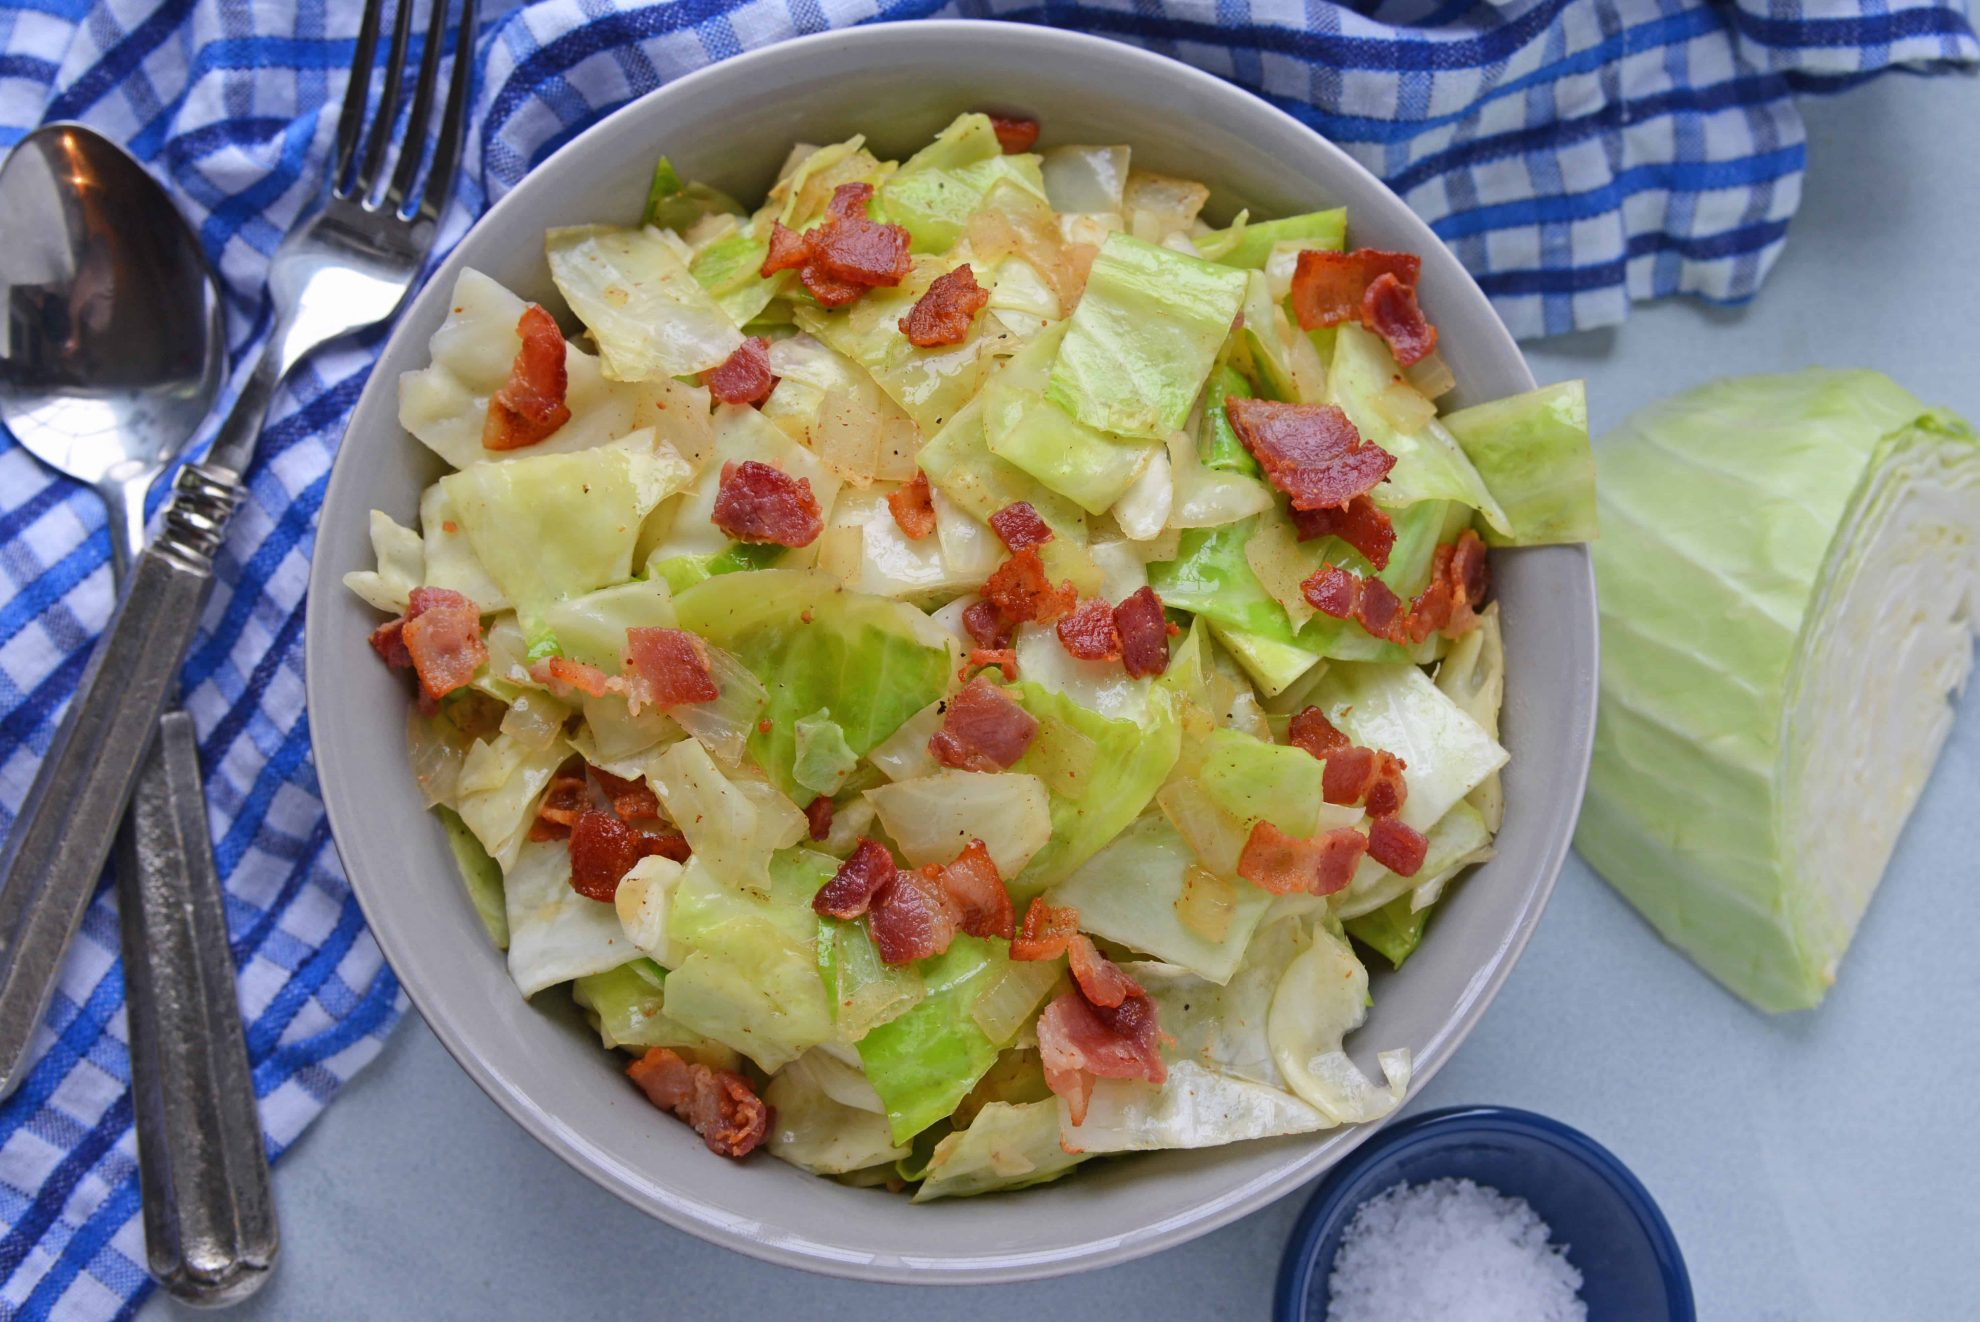 Overhead of bacon fried cabbage with blue napkin